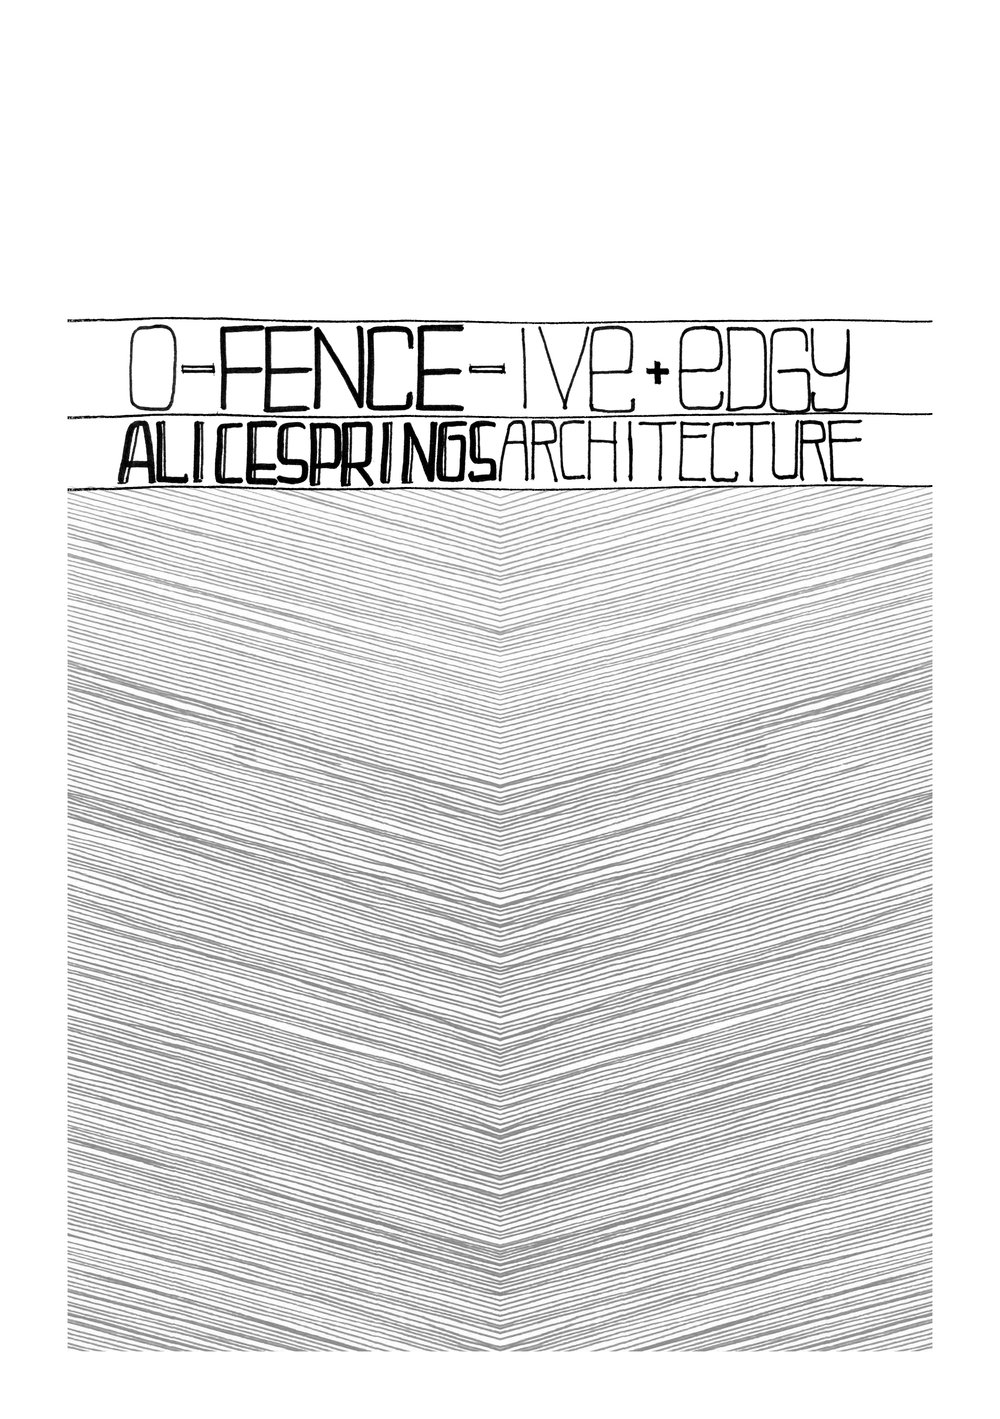 Click  ON THE IMAGE  to check out/download the Alice zine edition:   O-fence-ive & edgy, Alice Springs Architecture.   Language warnings!